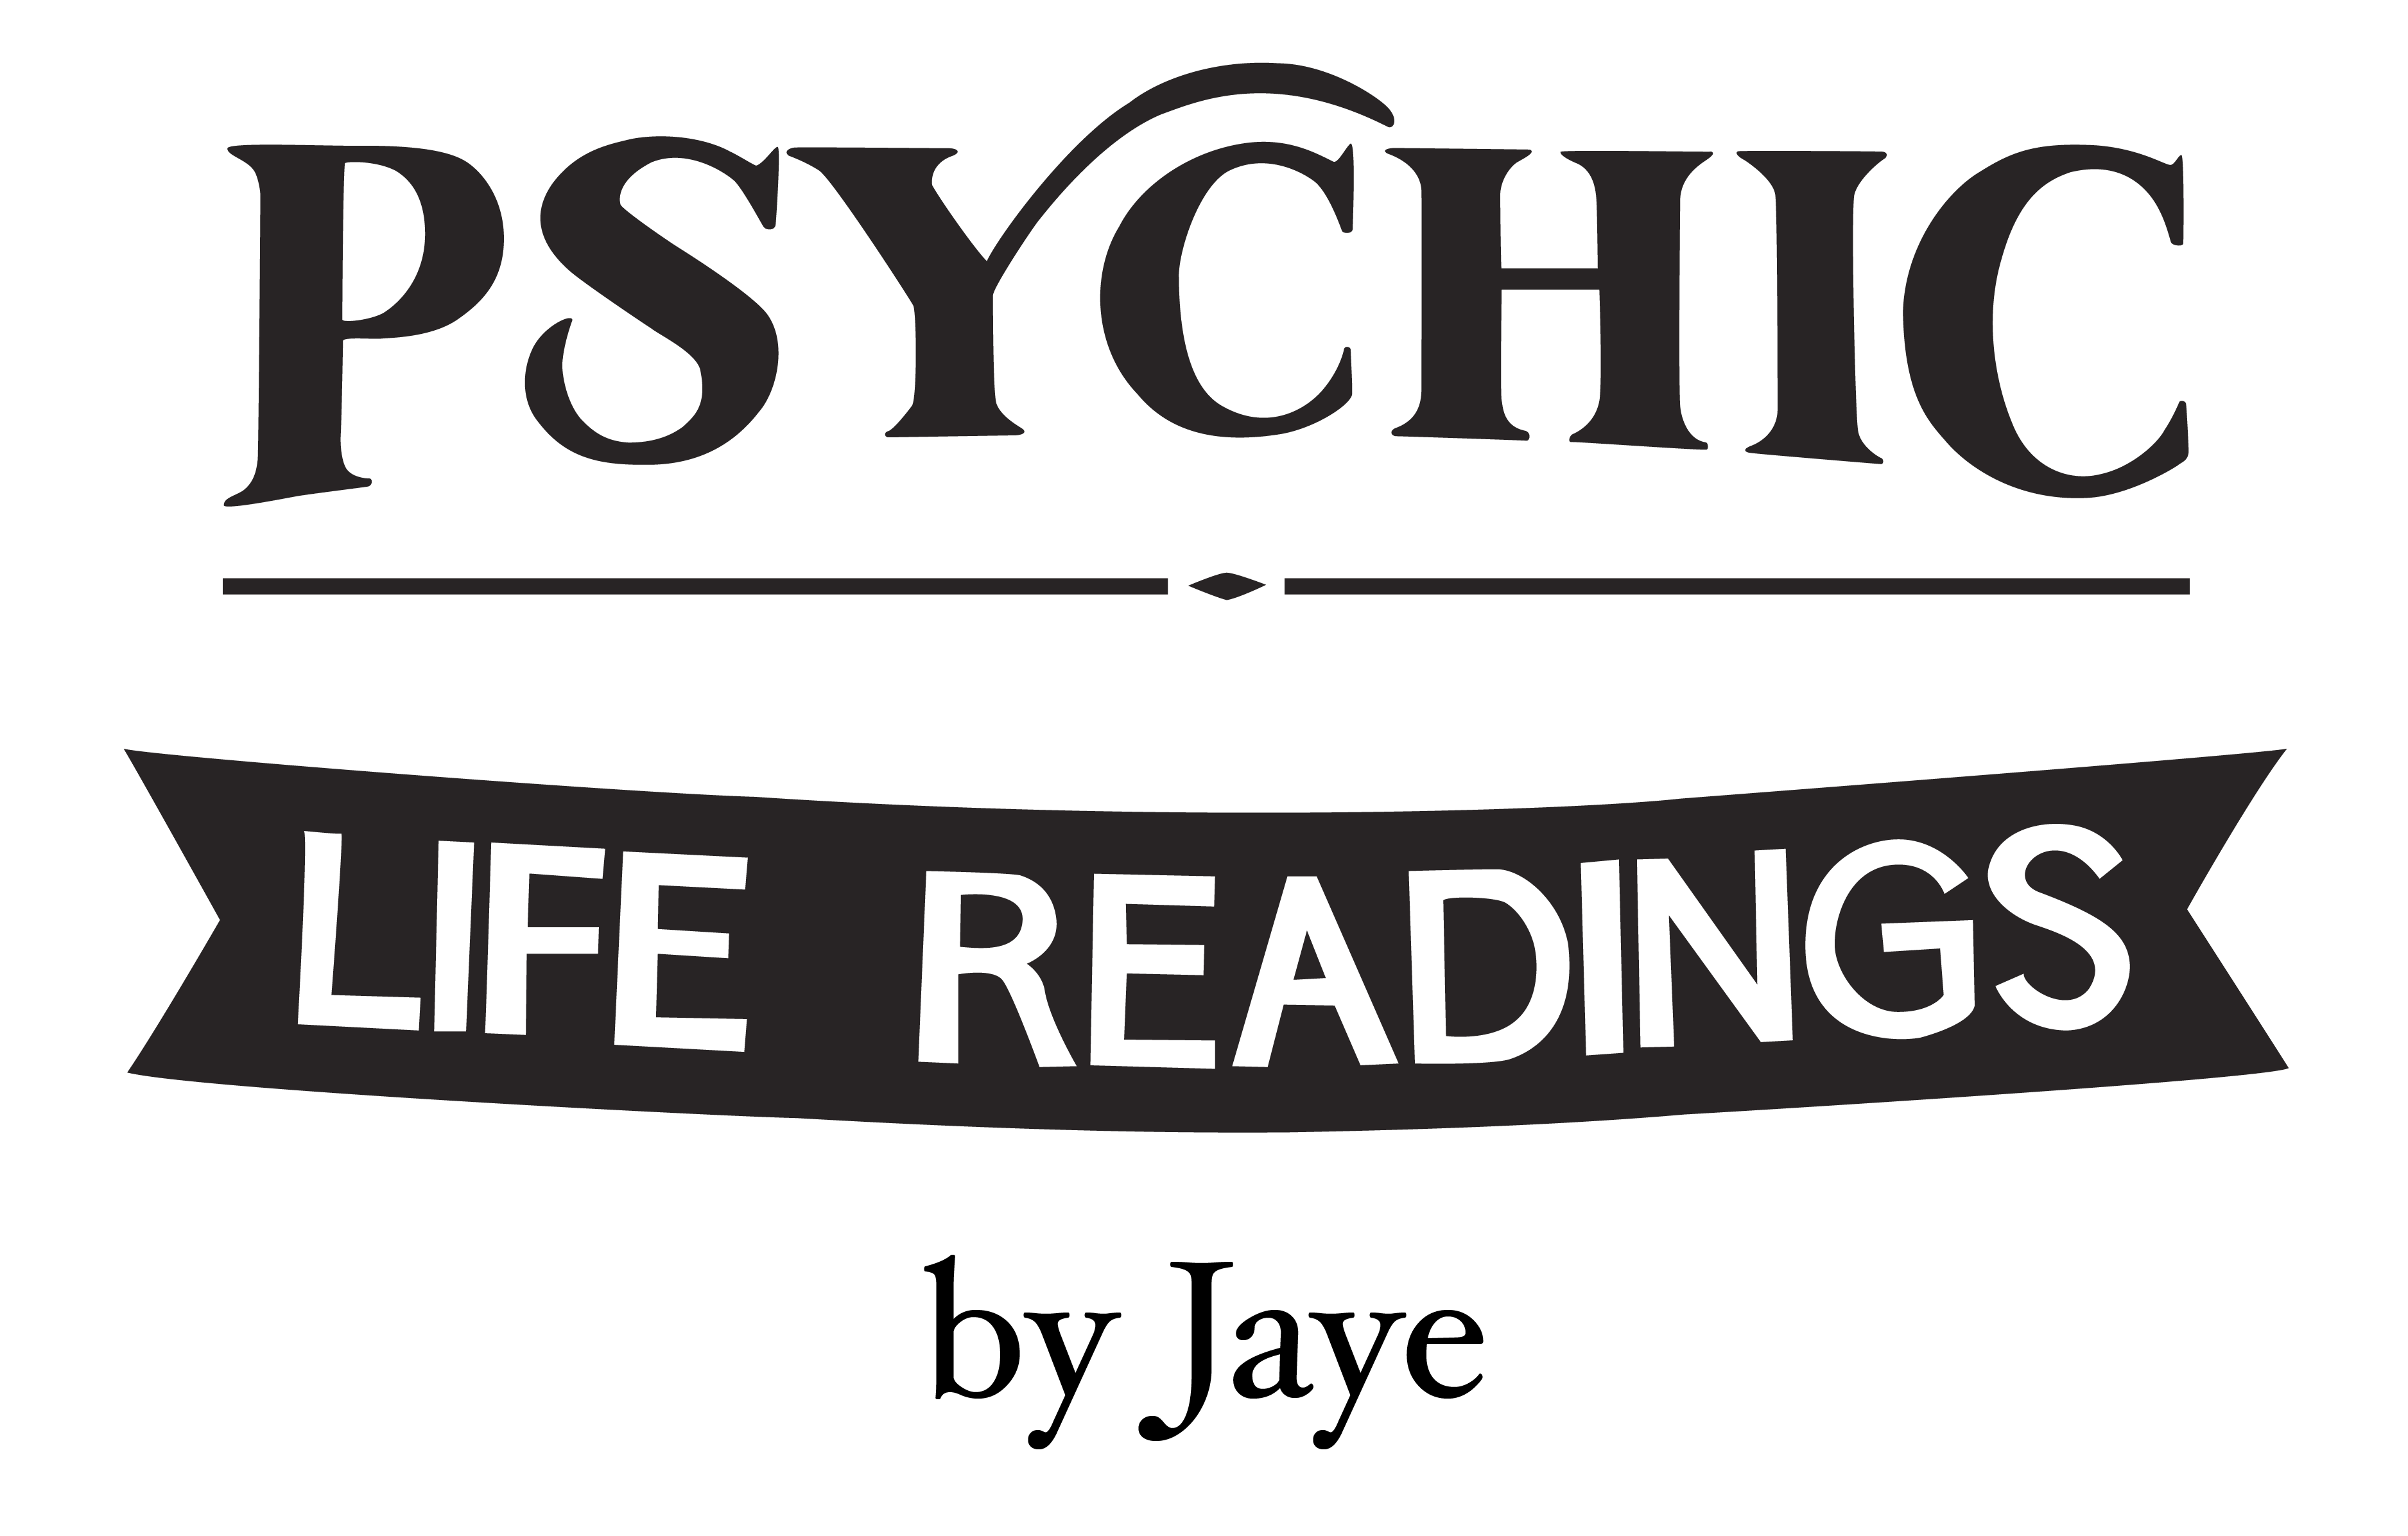 Psychic Life Readings